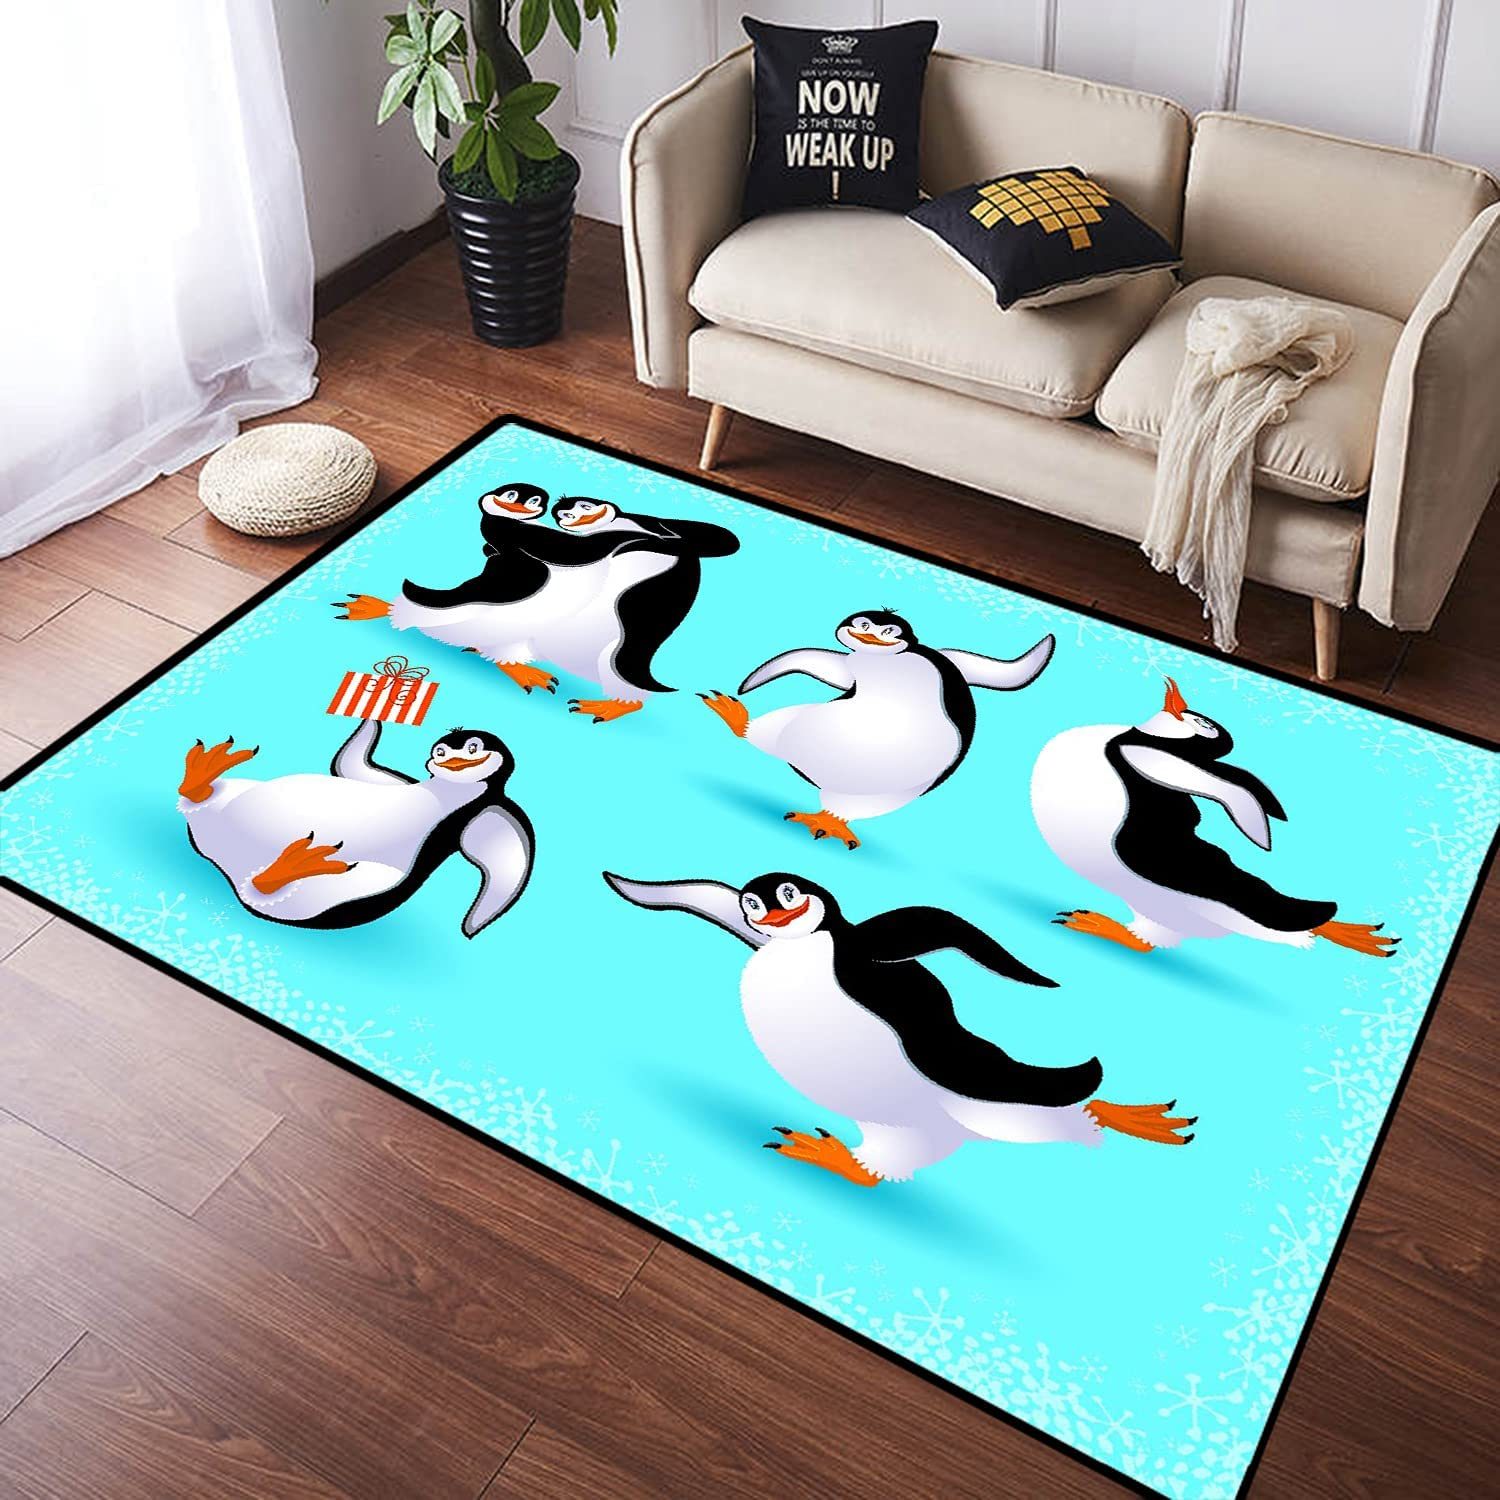 ZOMOY Long Floor Mat Carpet Penguins Abso Non-Slip Dancing Funny At the price 5 popular